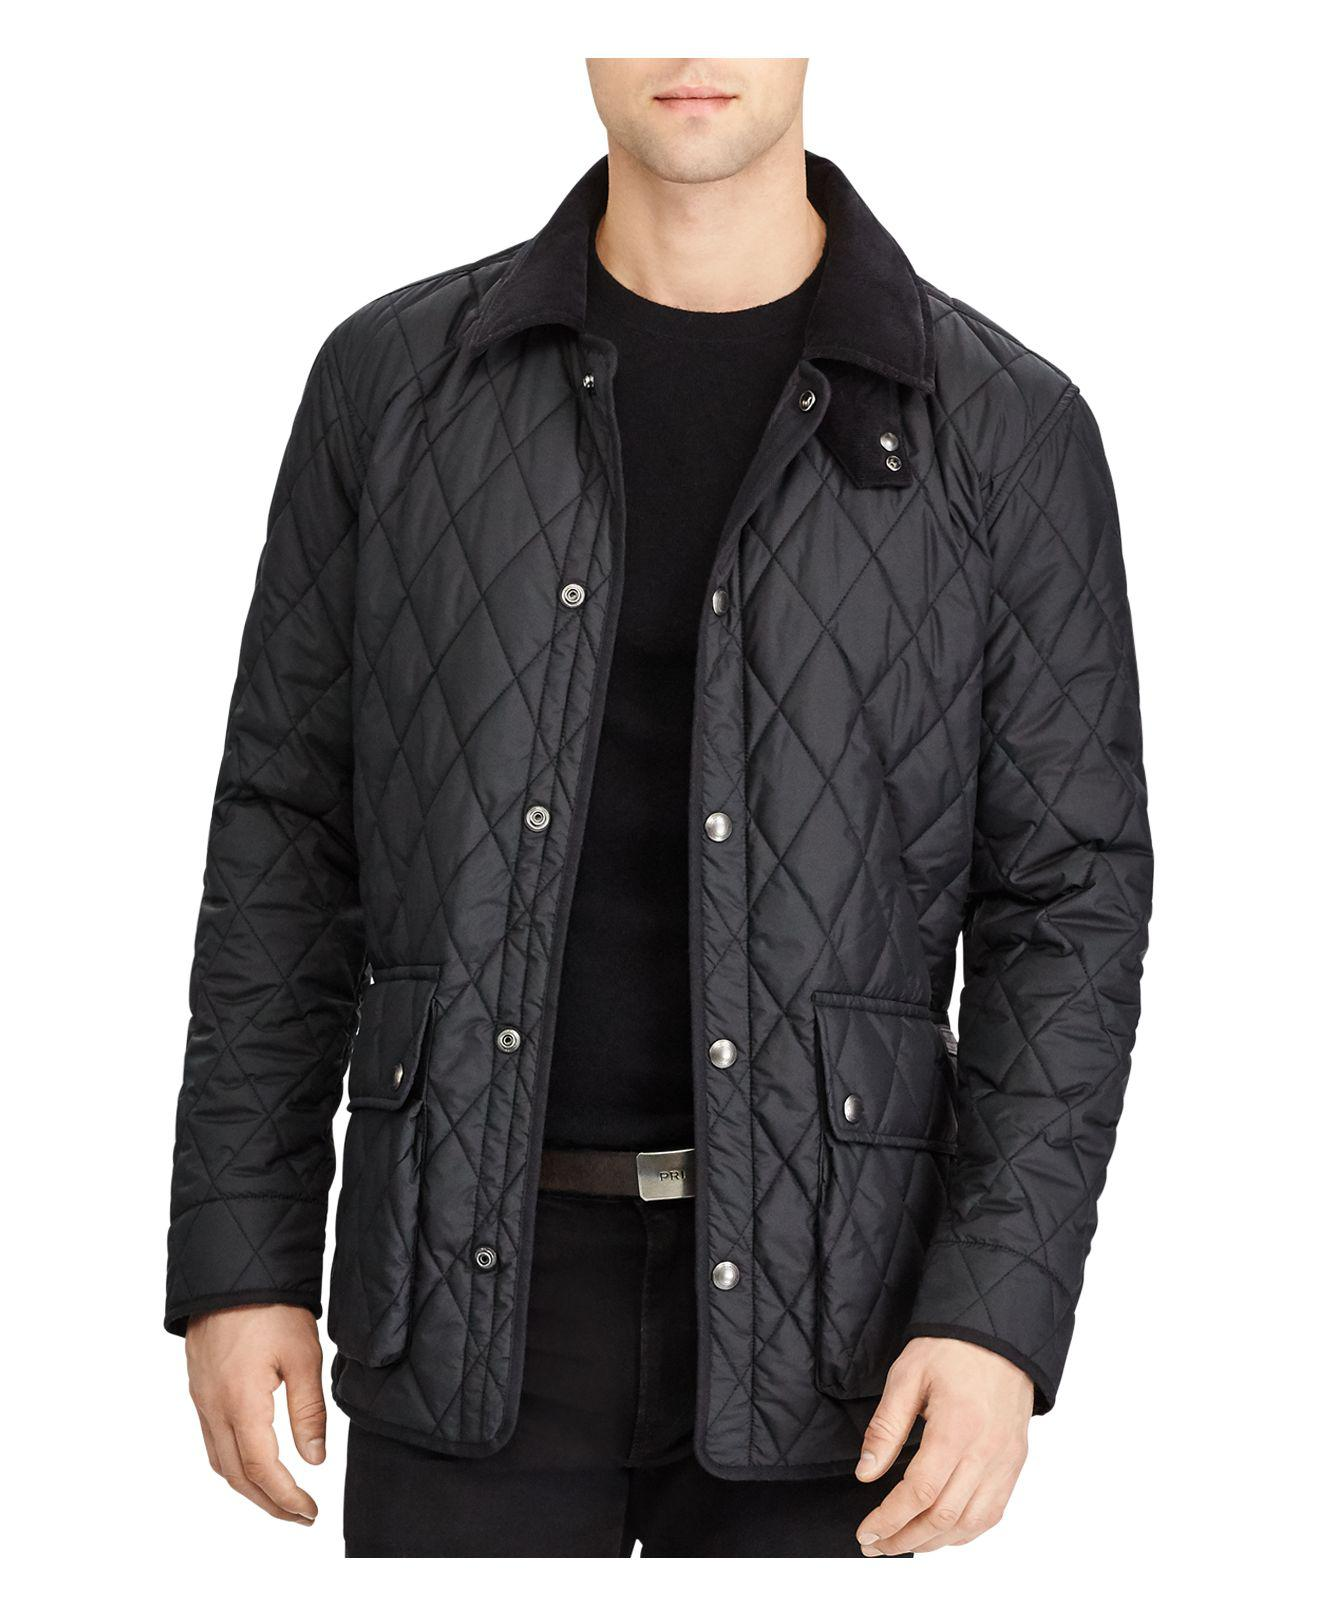 Polo Ralph Lauren Iconic Quilted Car Coat In Black For Men